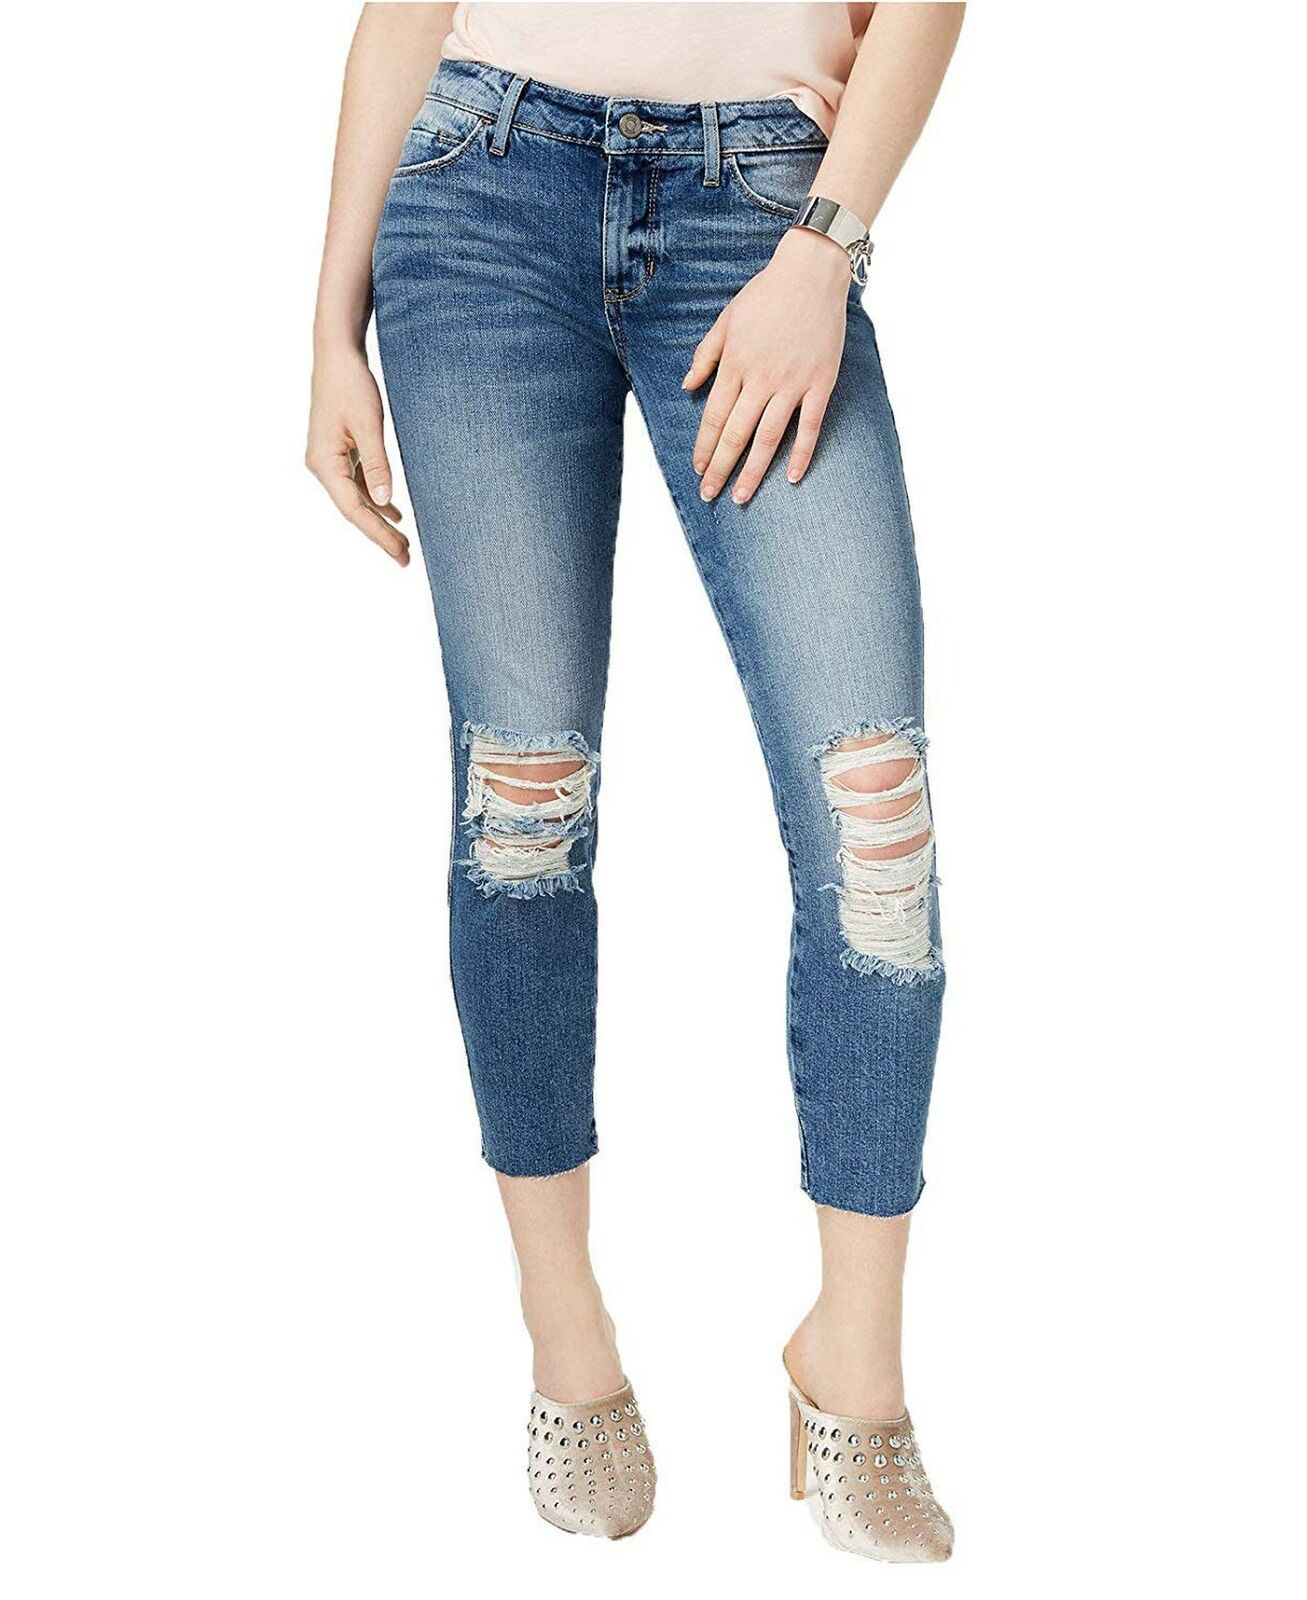 GUESS Women's Ripped Skinny Jeans (Supernova Wash, 24)